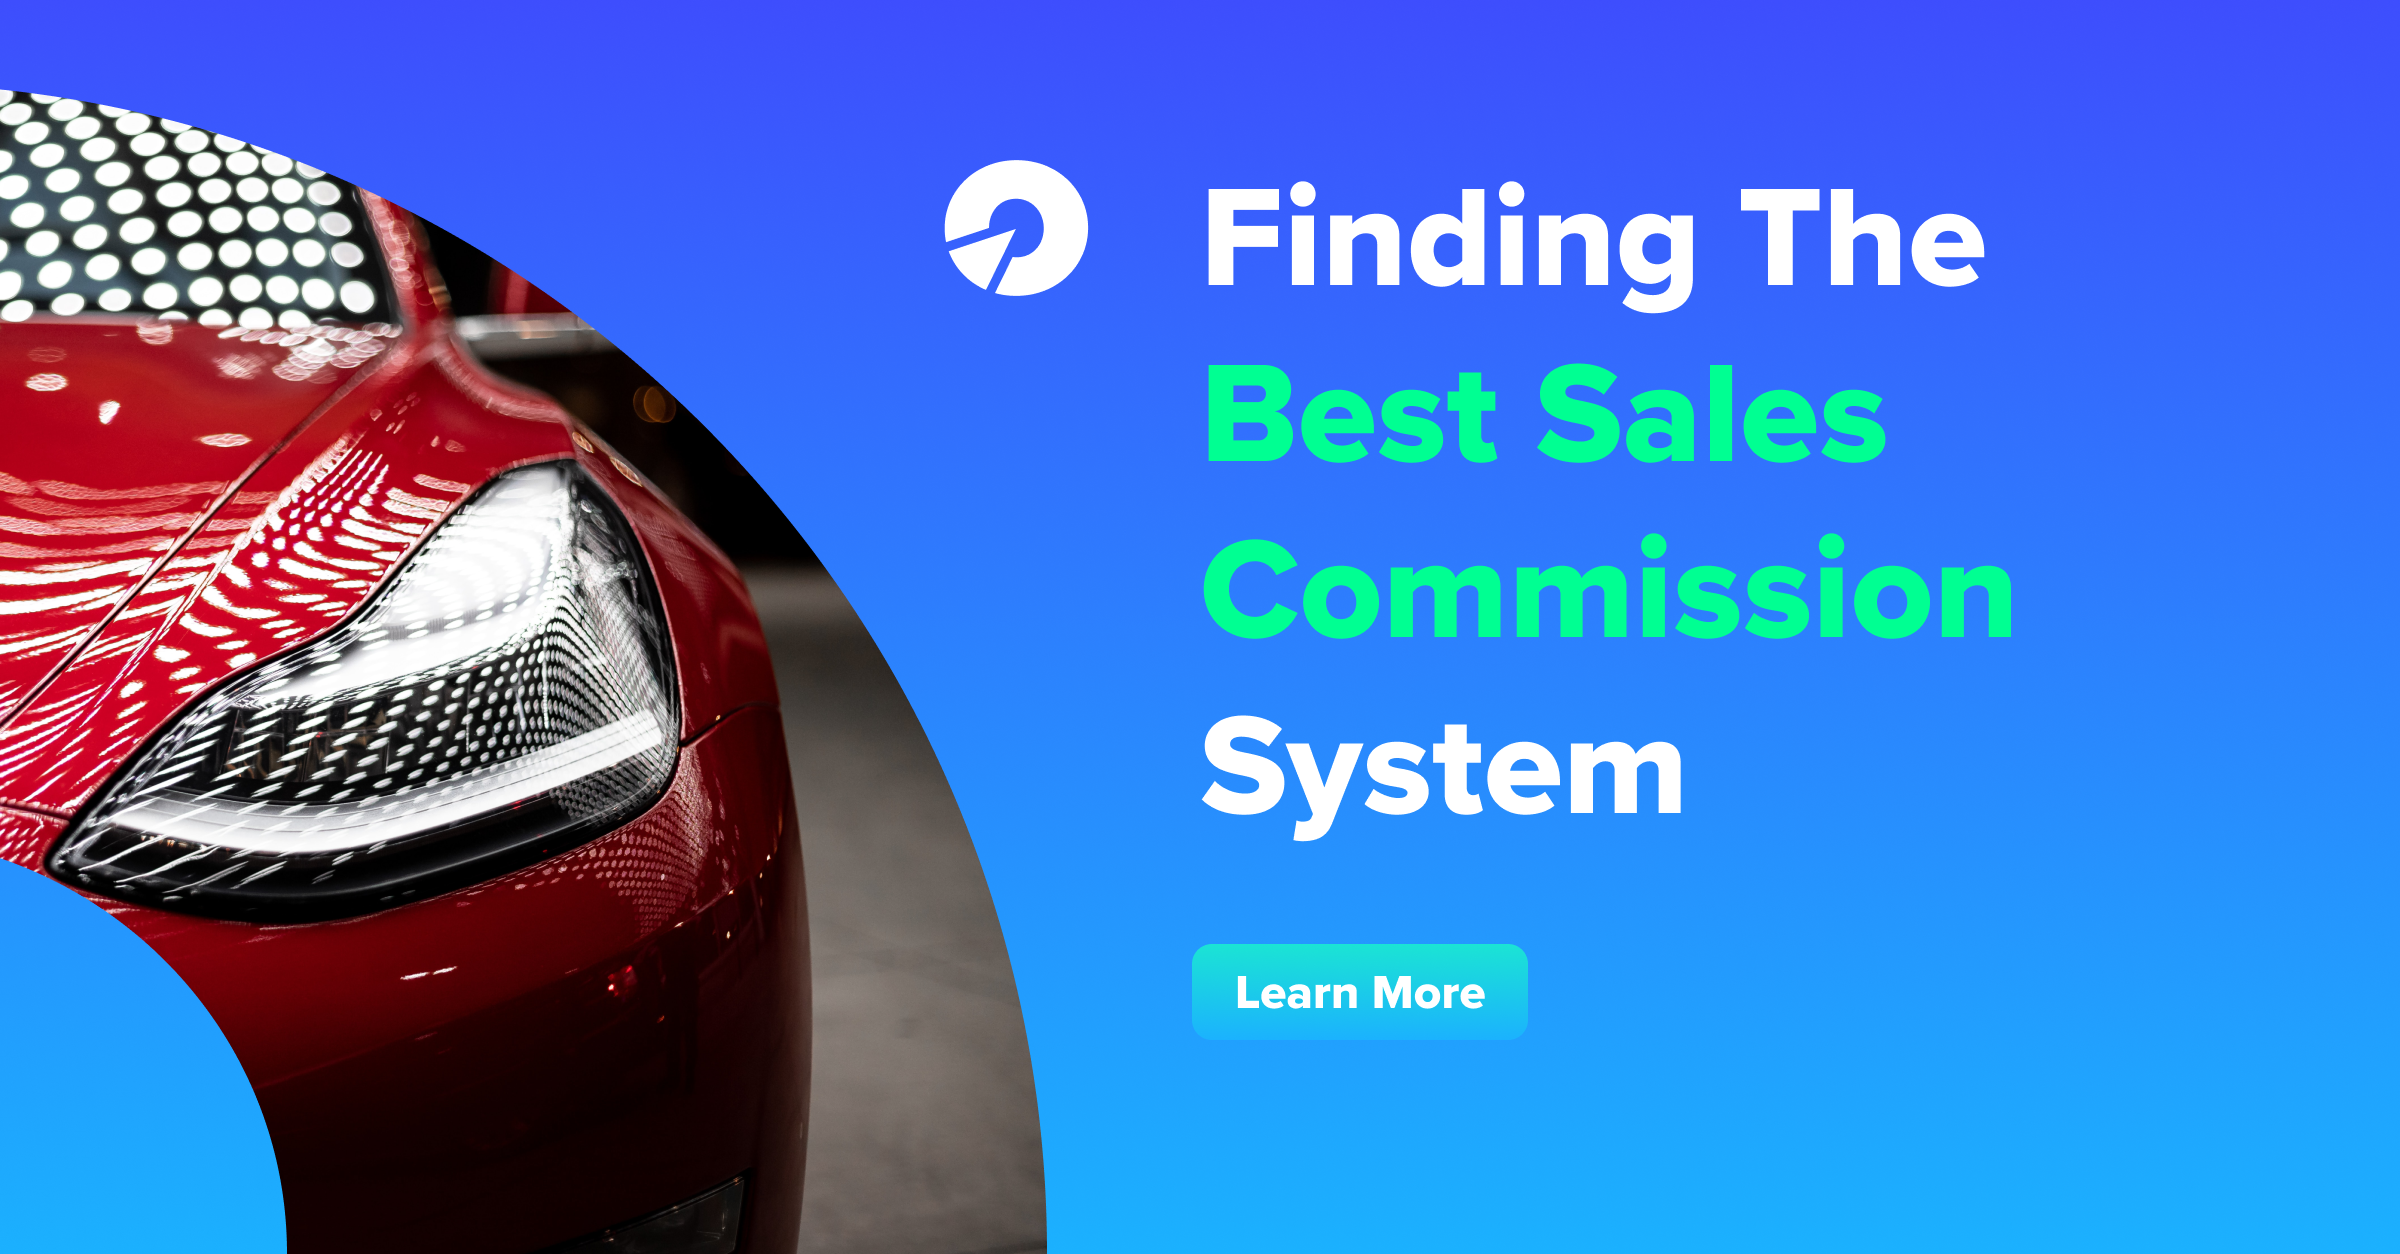 Finding The Best Sales Commission System